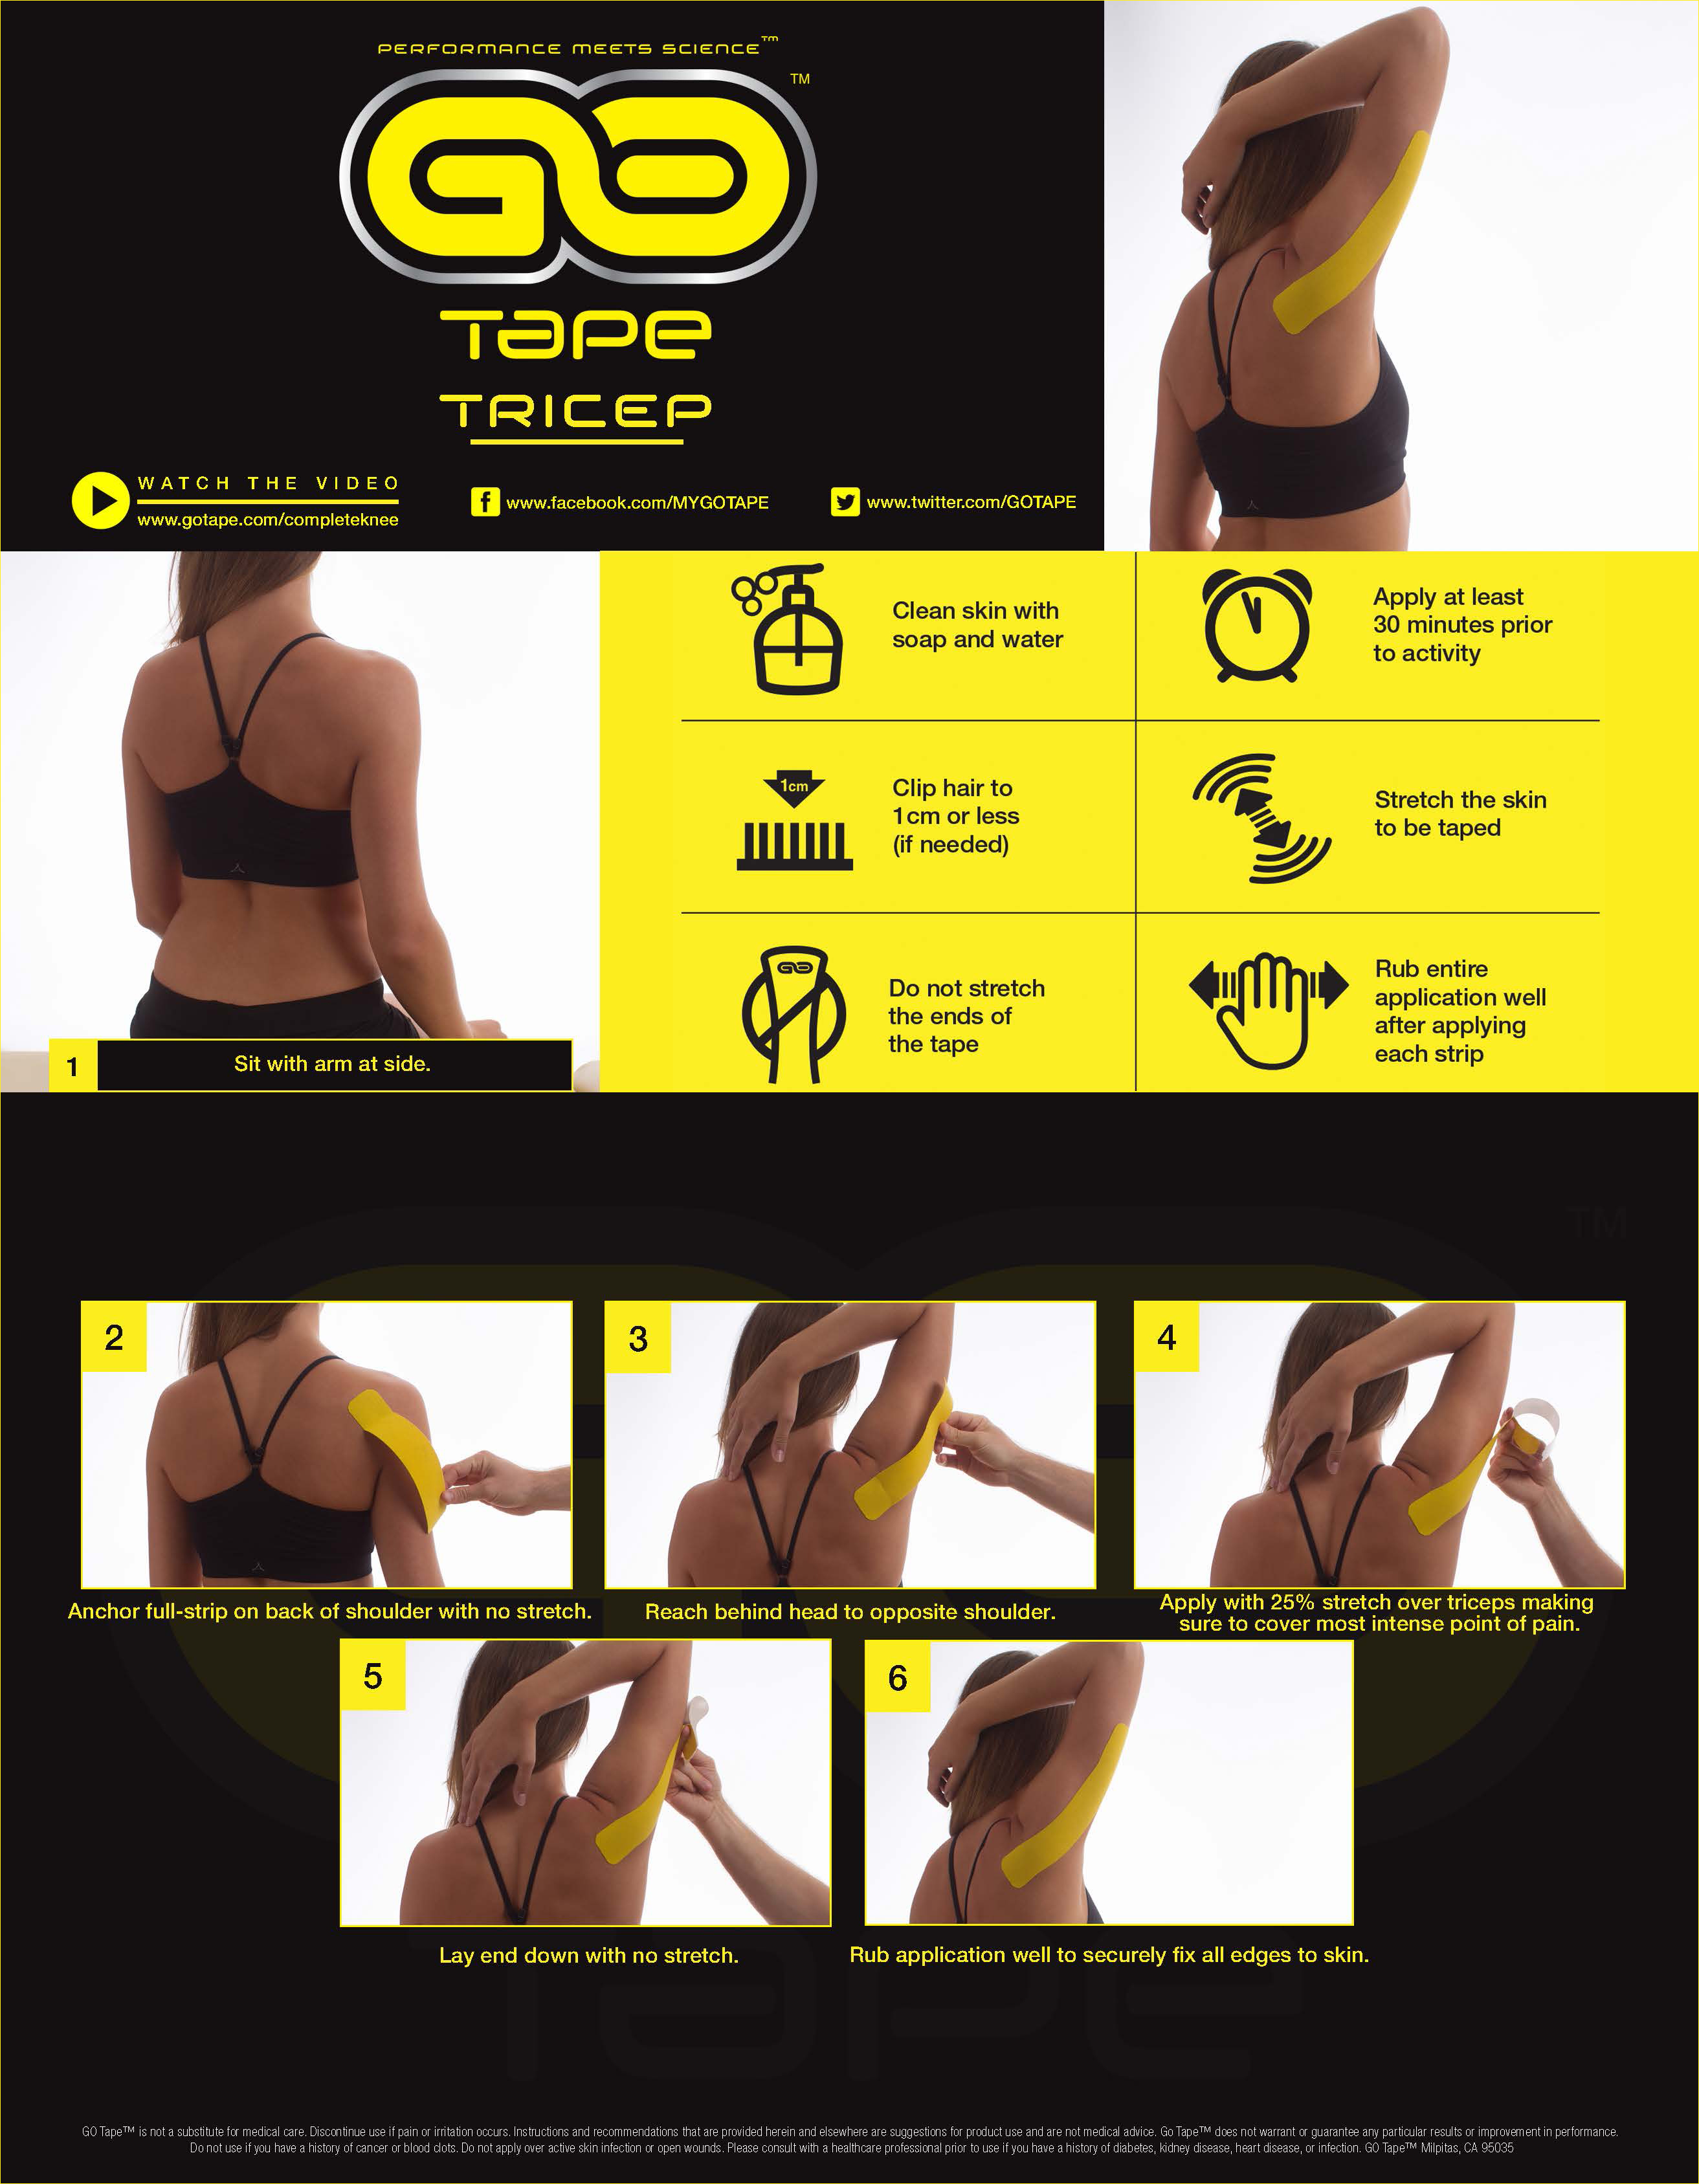 GO_Tape_Application_Instructions_Tricep